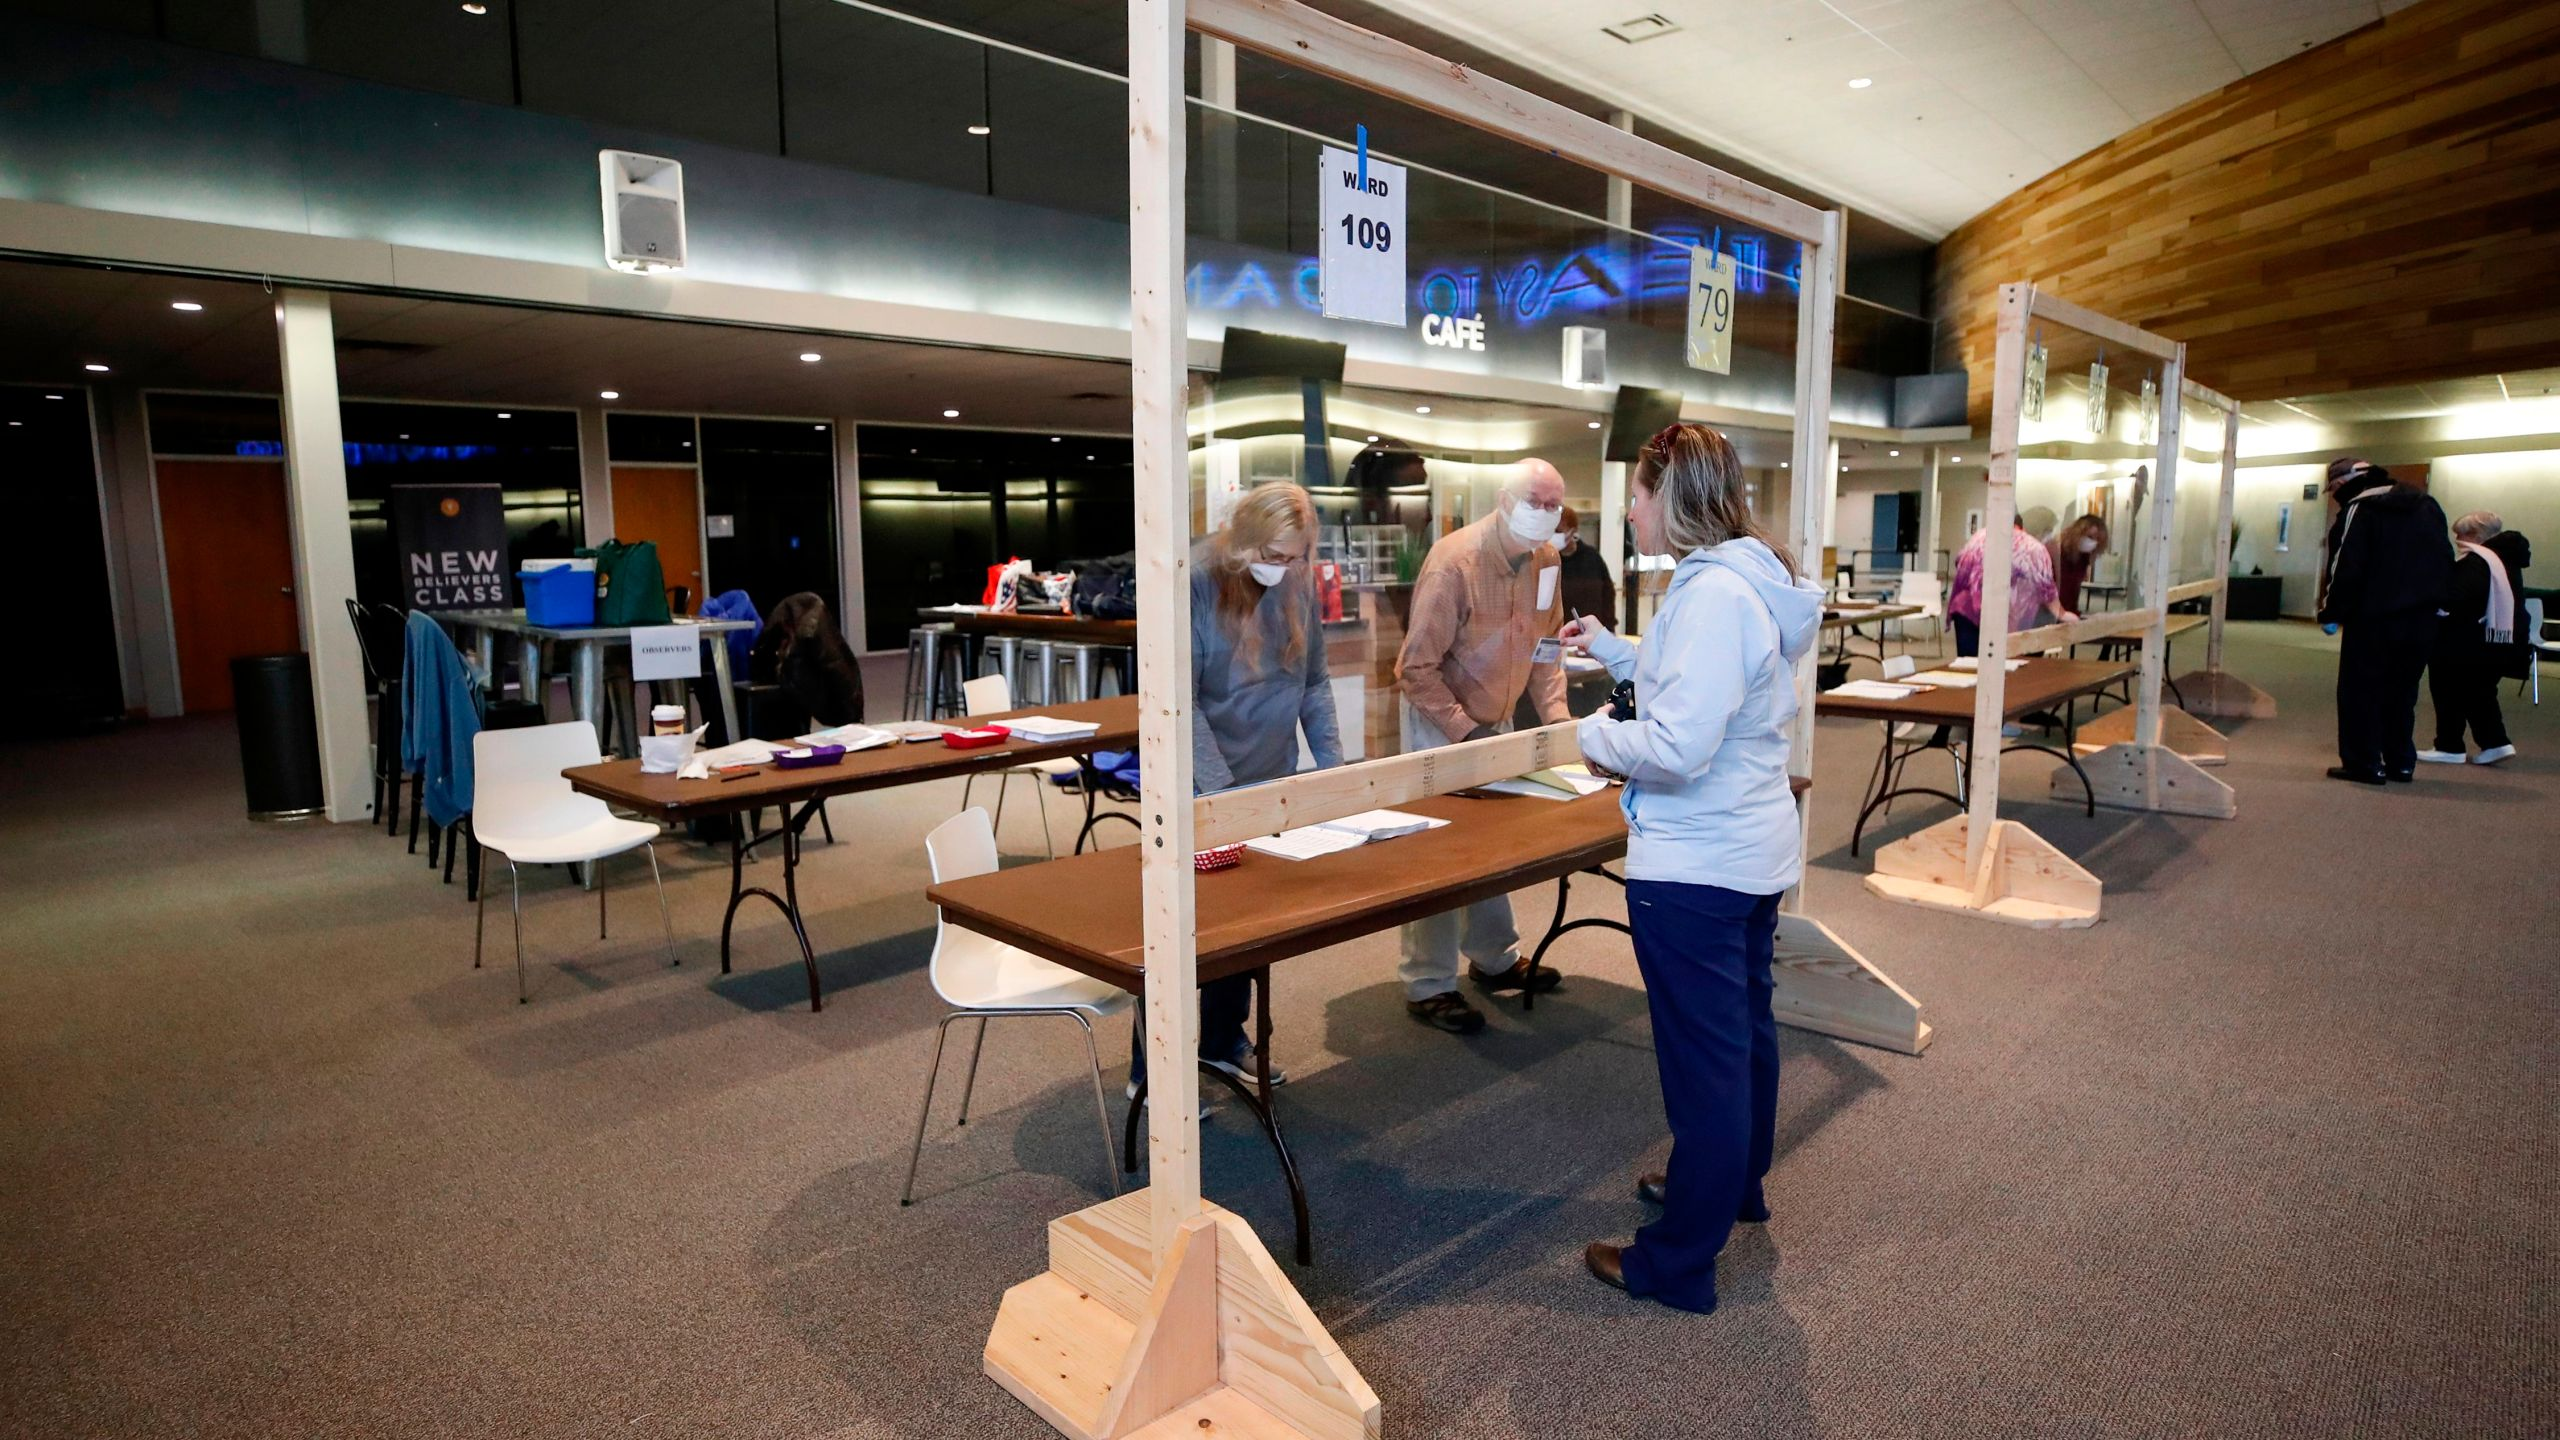 A woman checks in to cast her ballot in a presidential primary election at the Journey Church in Kenosha, Wisconsin, on April 7, 2020. (KAMIL KRZACZYNSKI/AFP via Getty Images)